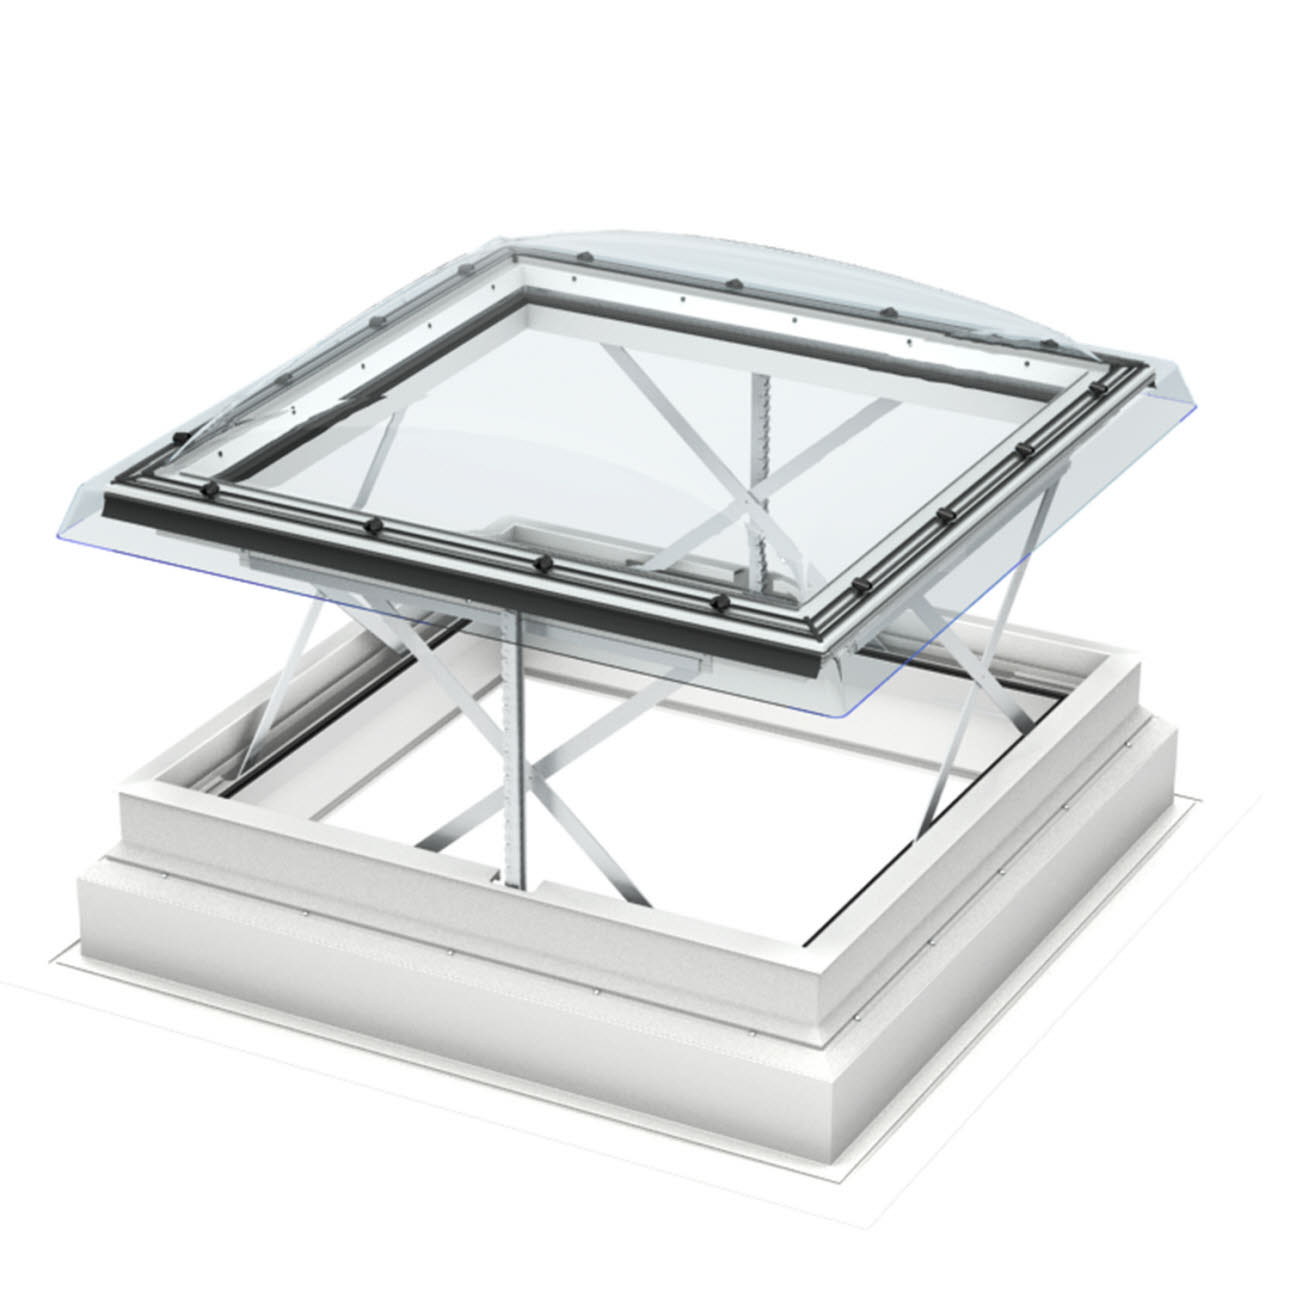 Open Velux Window illustrating smoke ventilation